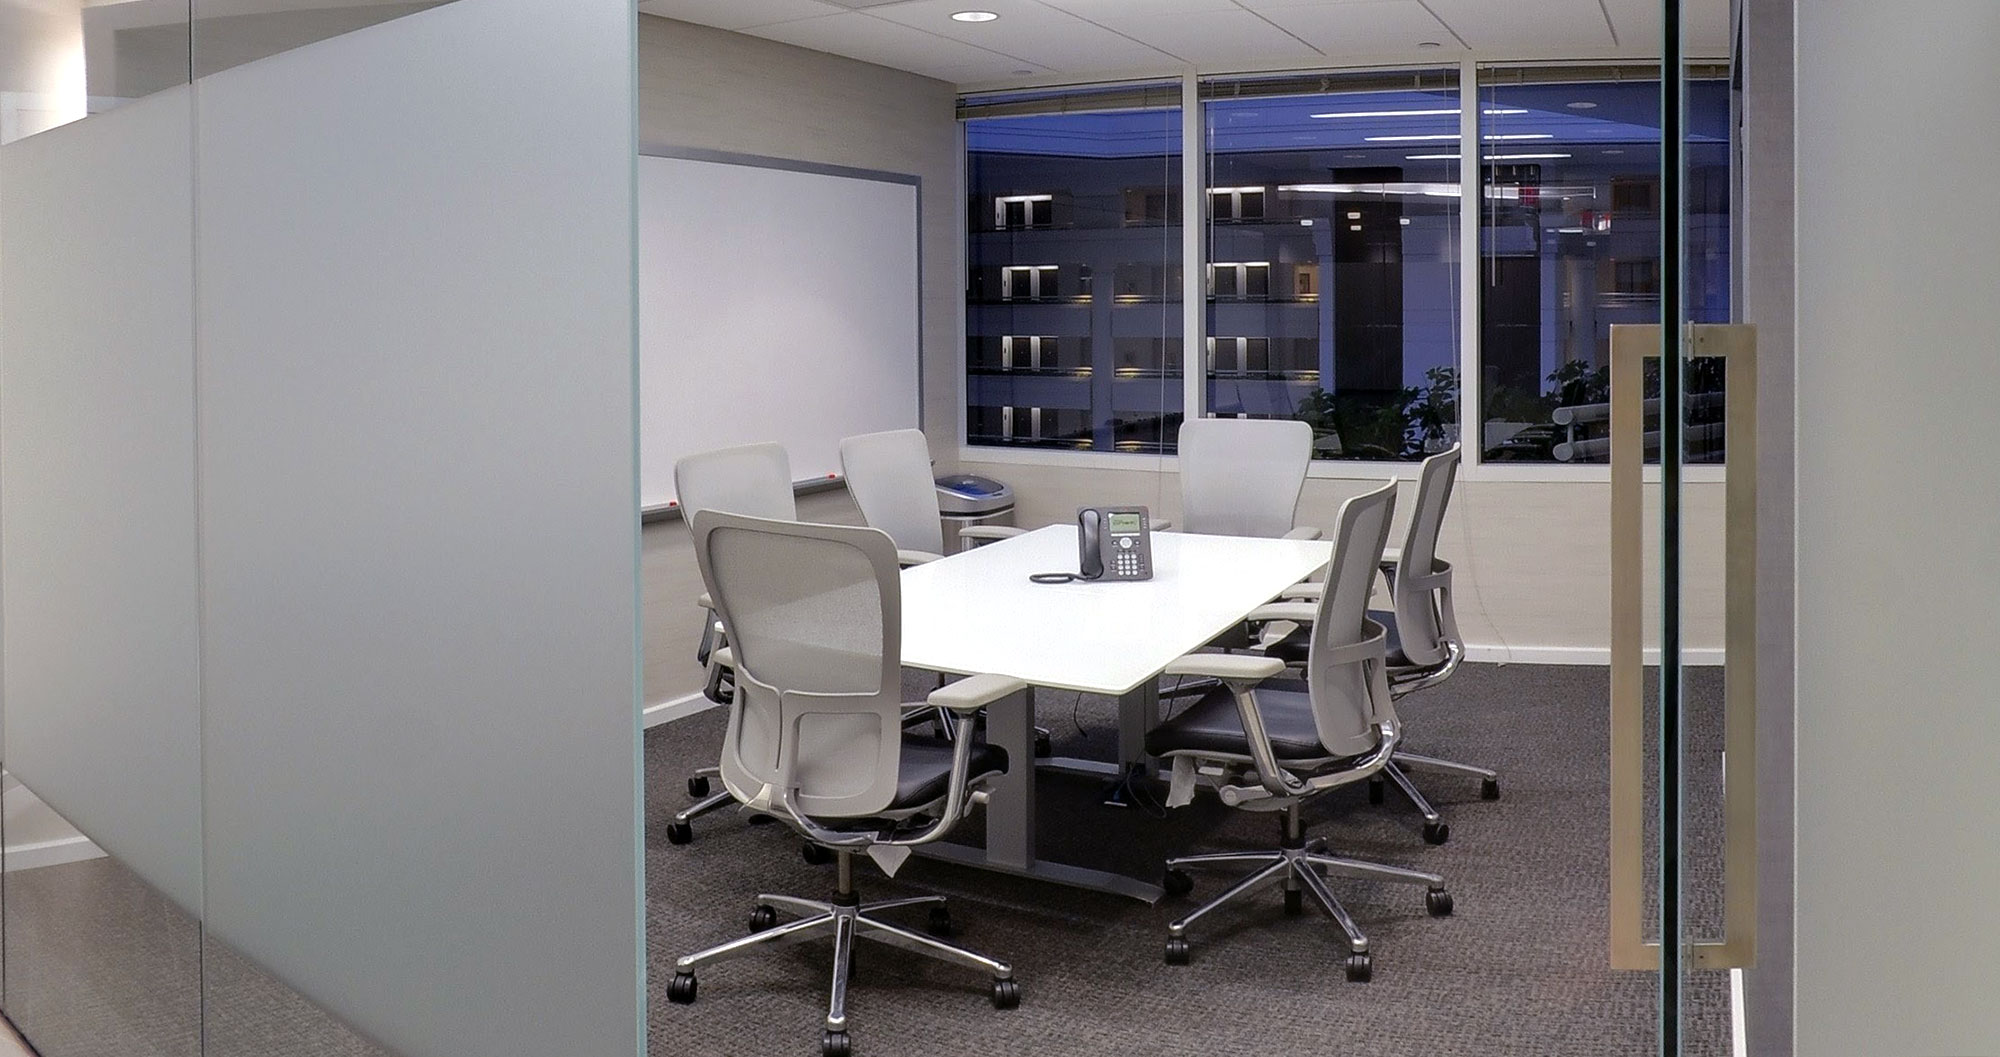 chevy chase meeting room with window